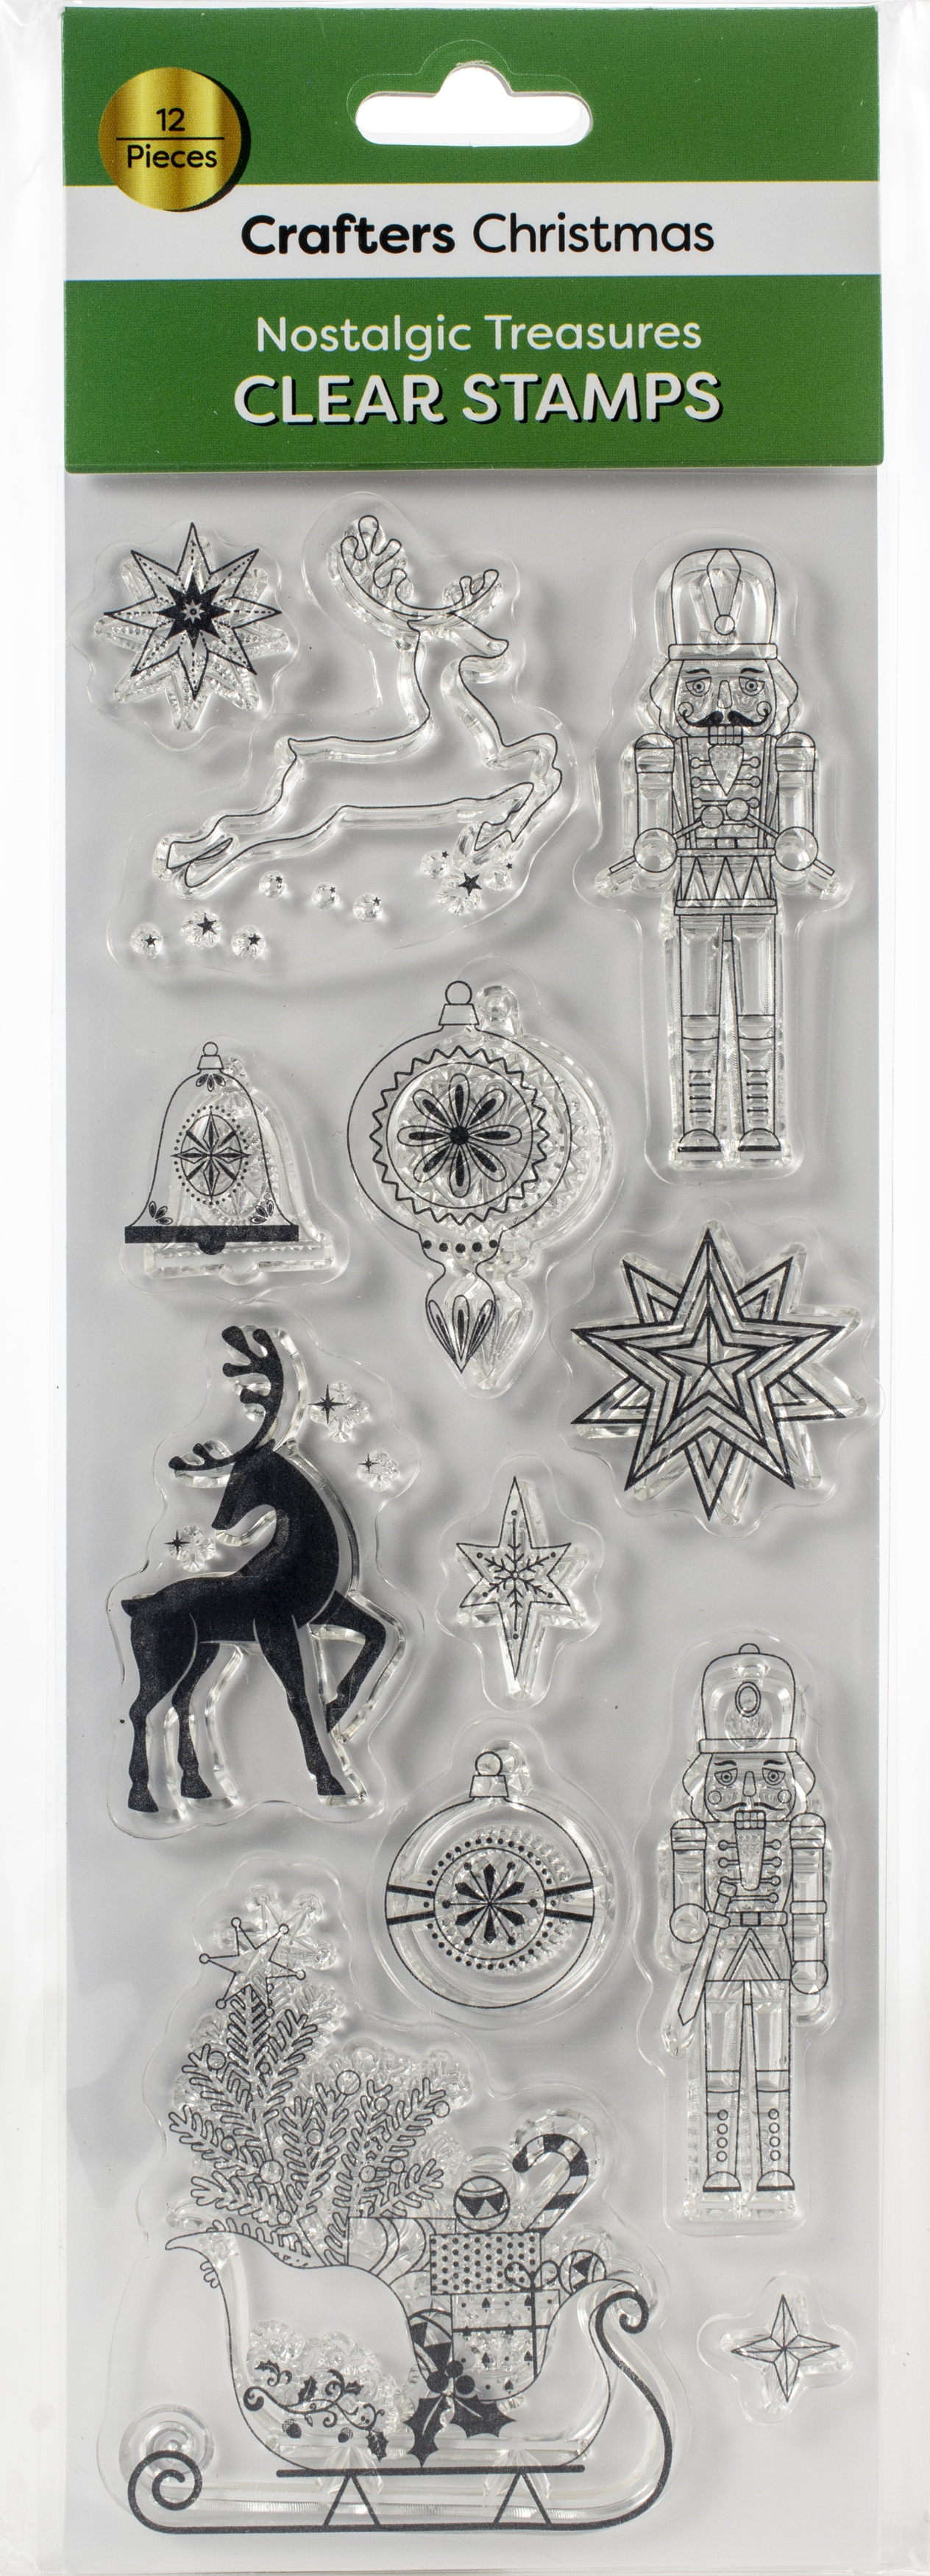 Crafters Christmas Clear Stamps-Nostalgic Treasures Icons